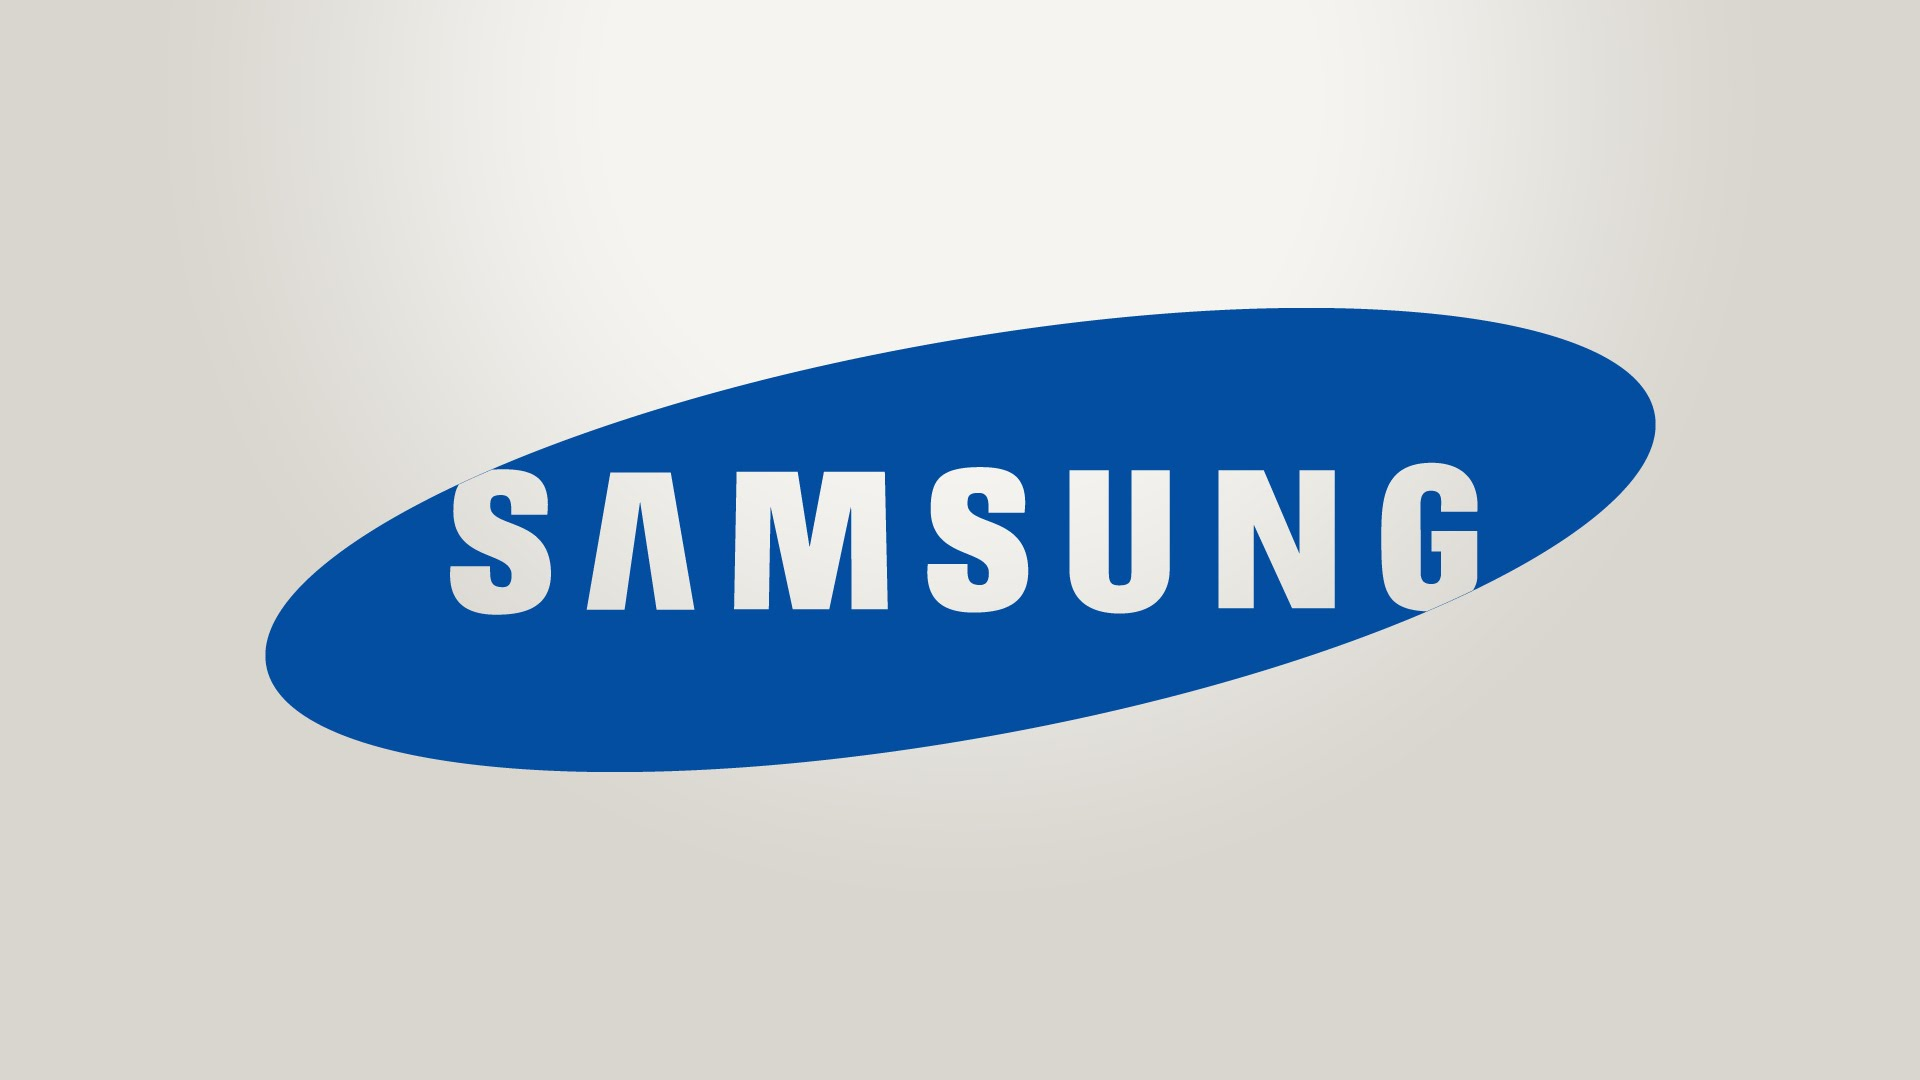 Install software for Samsung smart phones